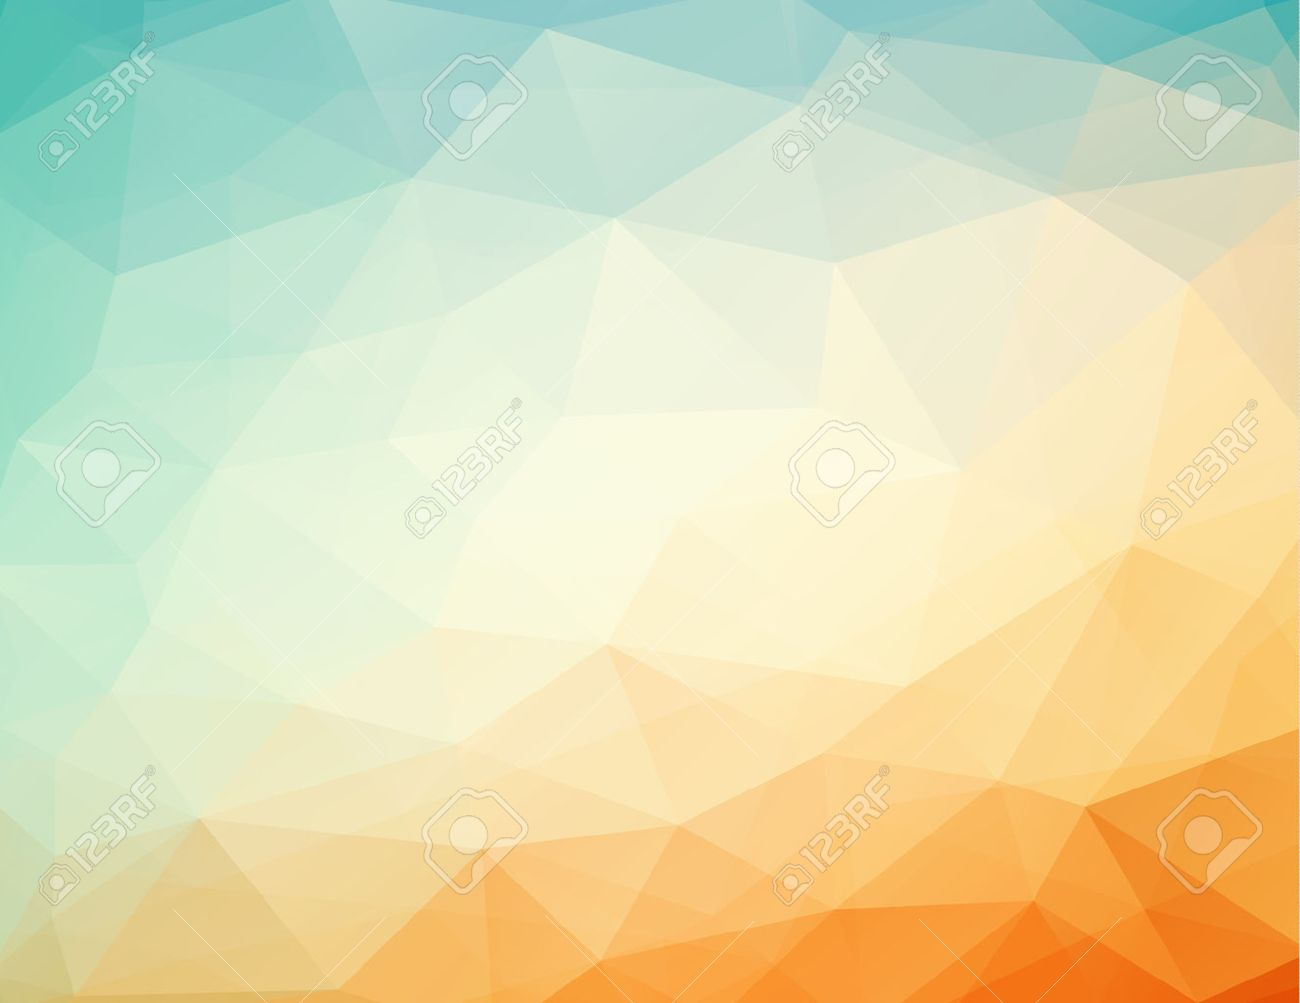 Unduh 870 Background In Orange And Blue HD Paling Keren